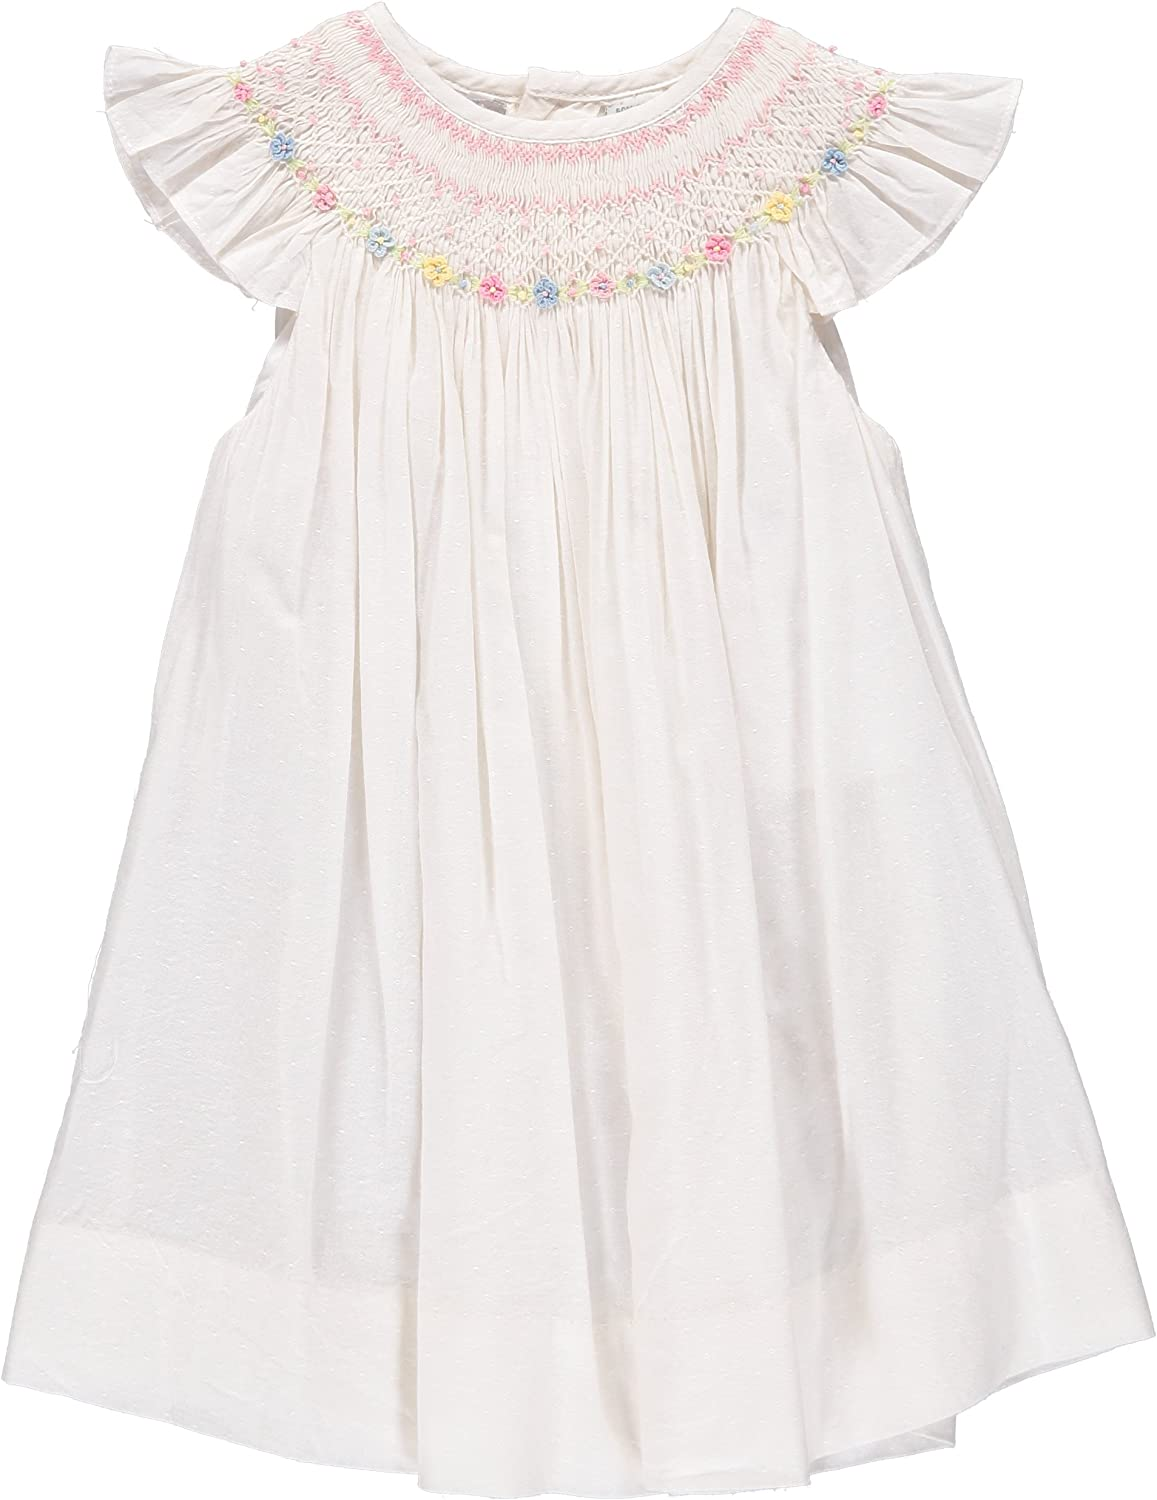 Carriage Boutique Super beauty Overseas parallel import regular item product restock quality top Baby Girl Dress White Bishop